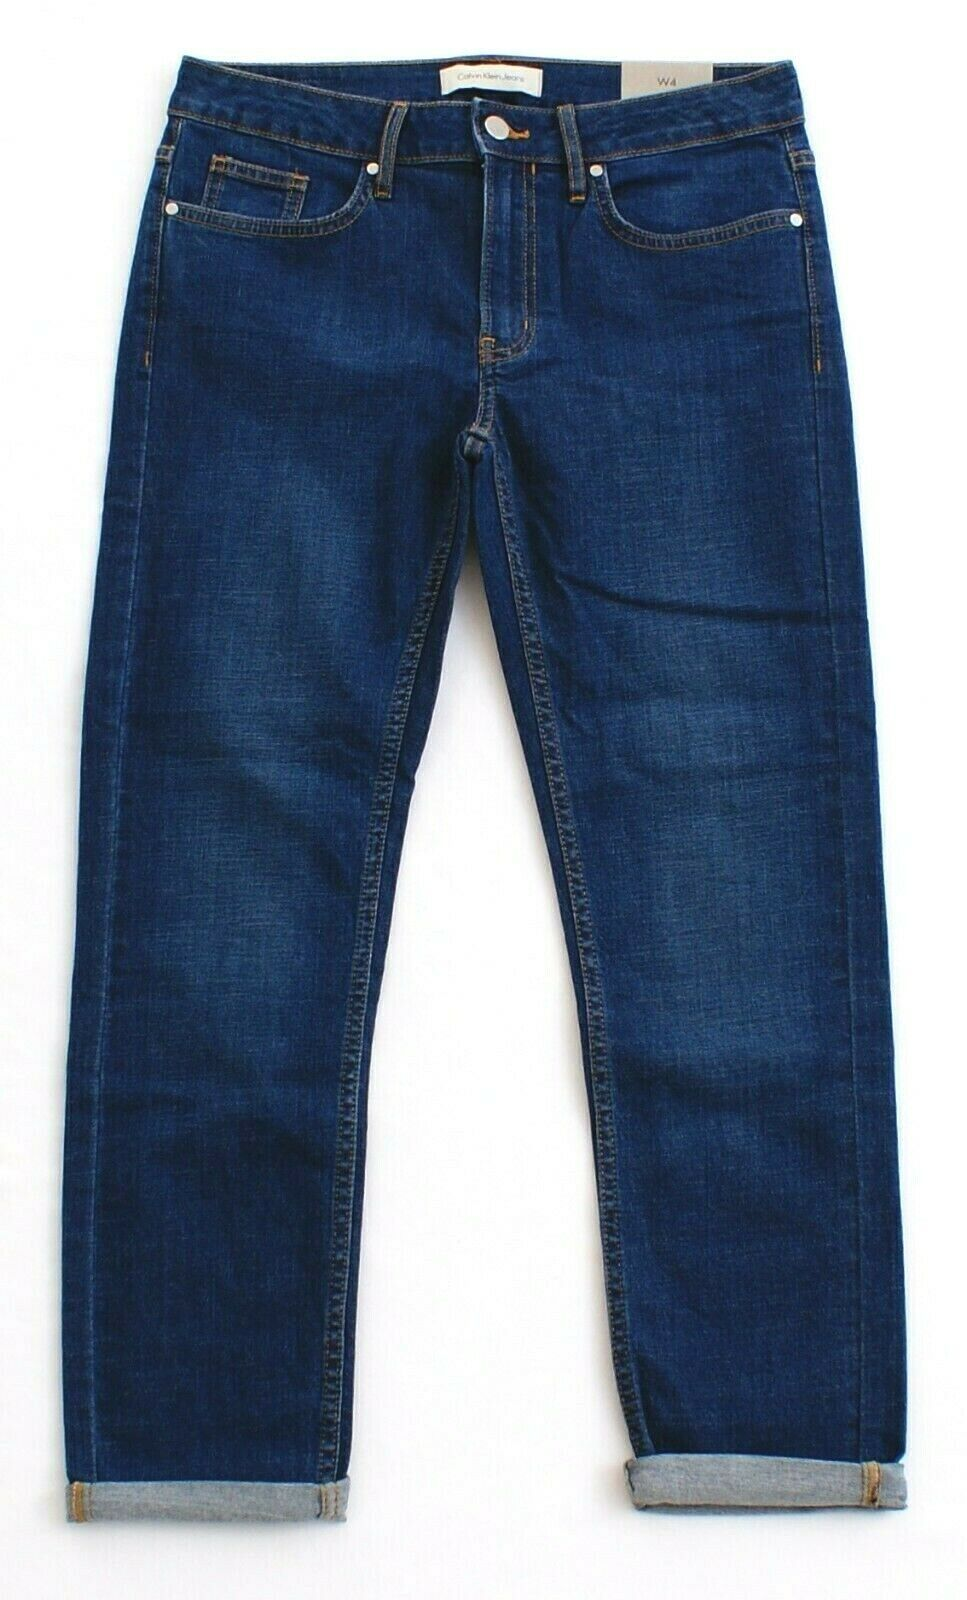 Calvin Klein Jeans Blue Denim Slim Boyfriend Stretch Jeans Pants Women's NWT - $59.99